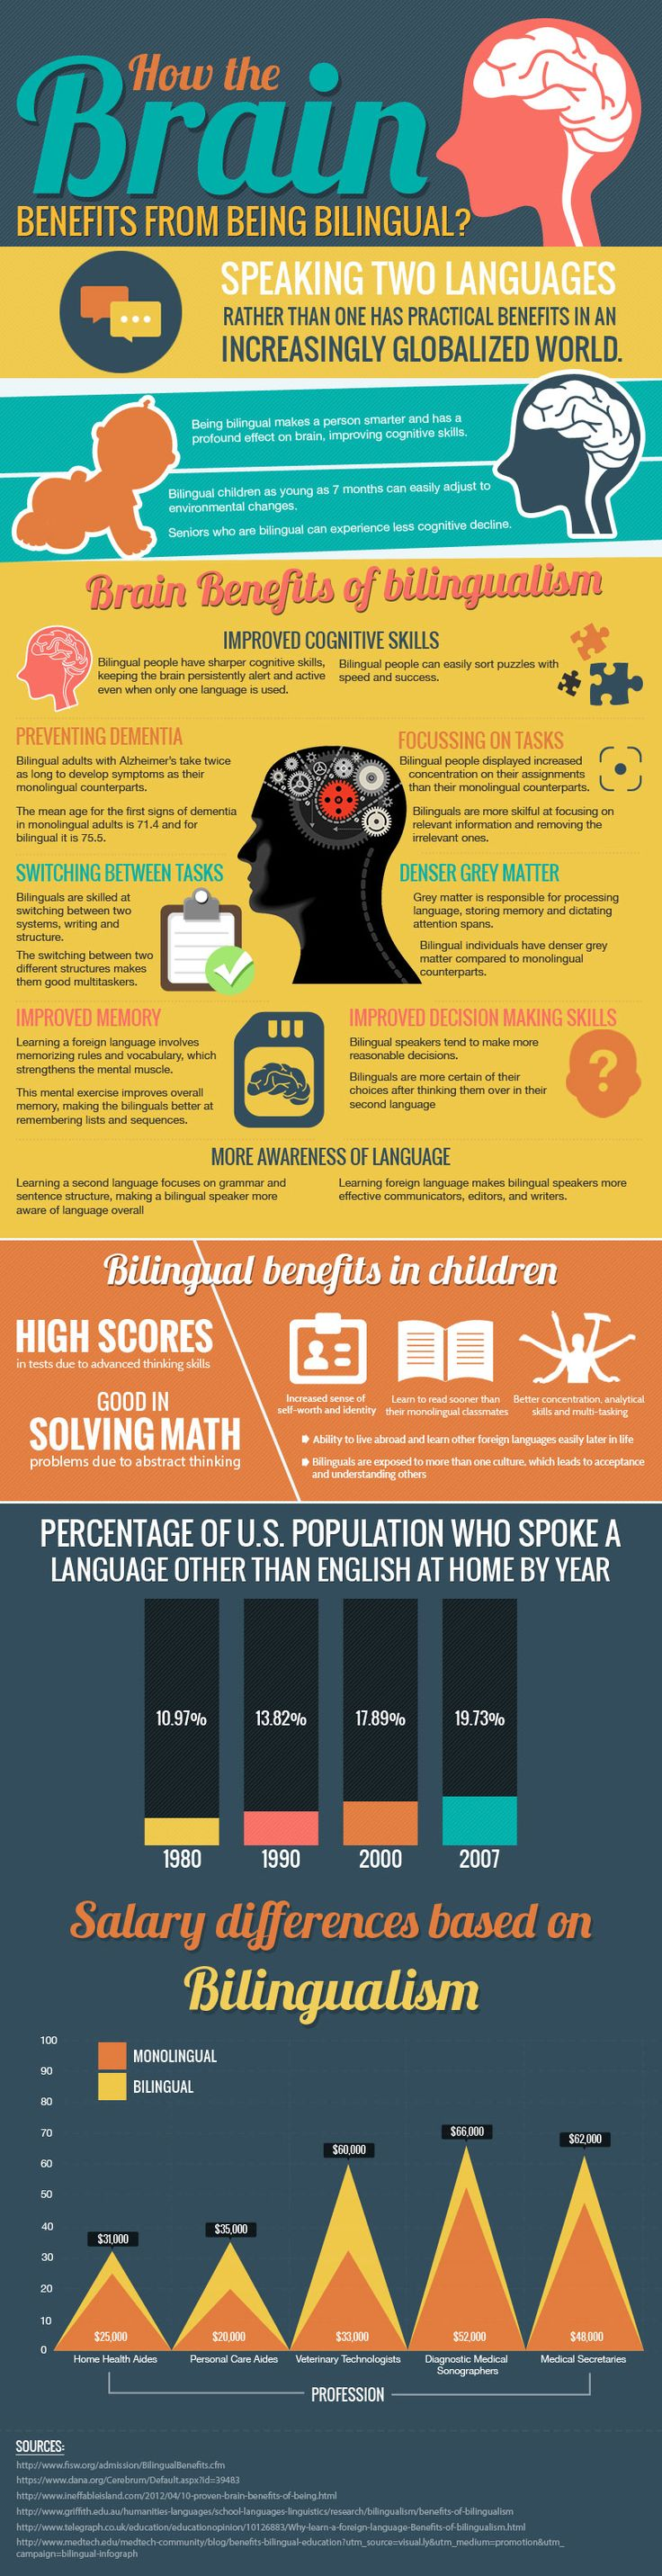 How the Brain Benefits from Being Bilingual